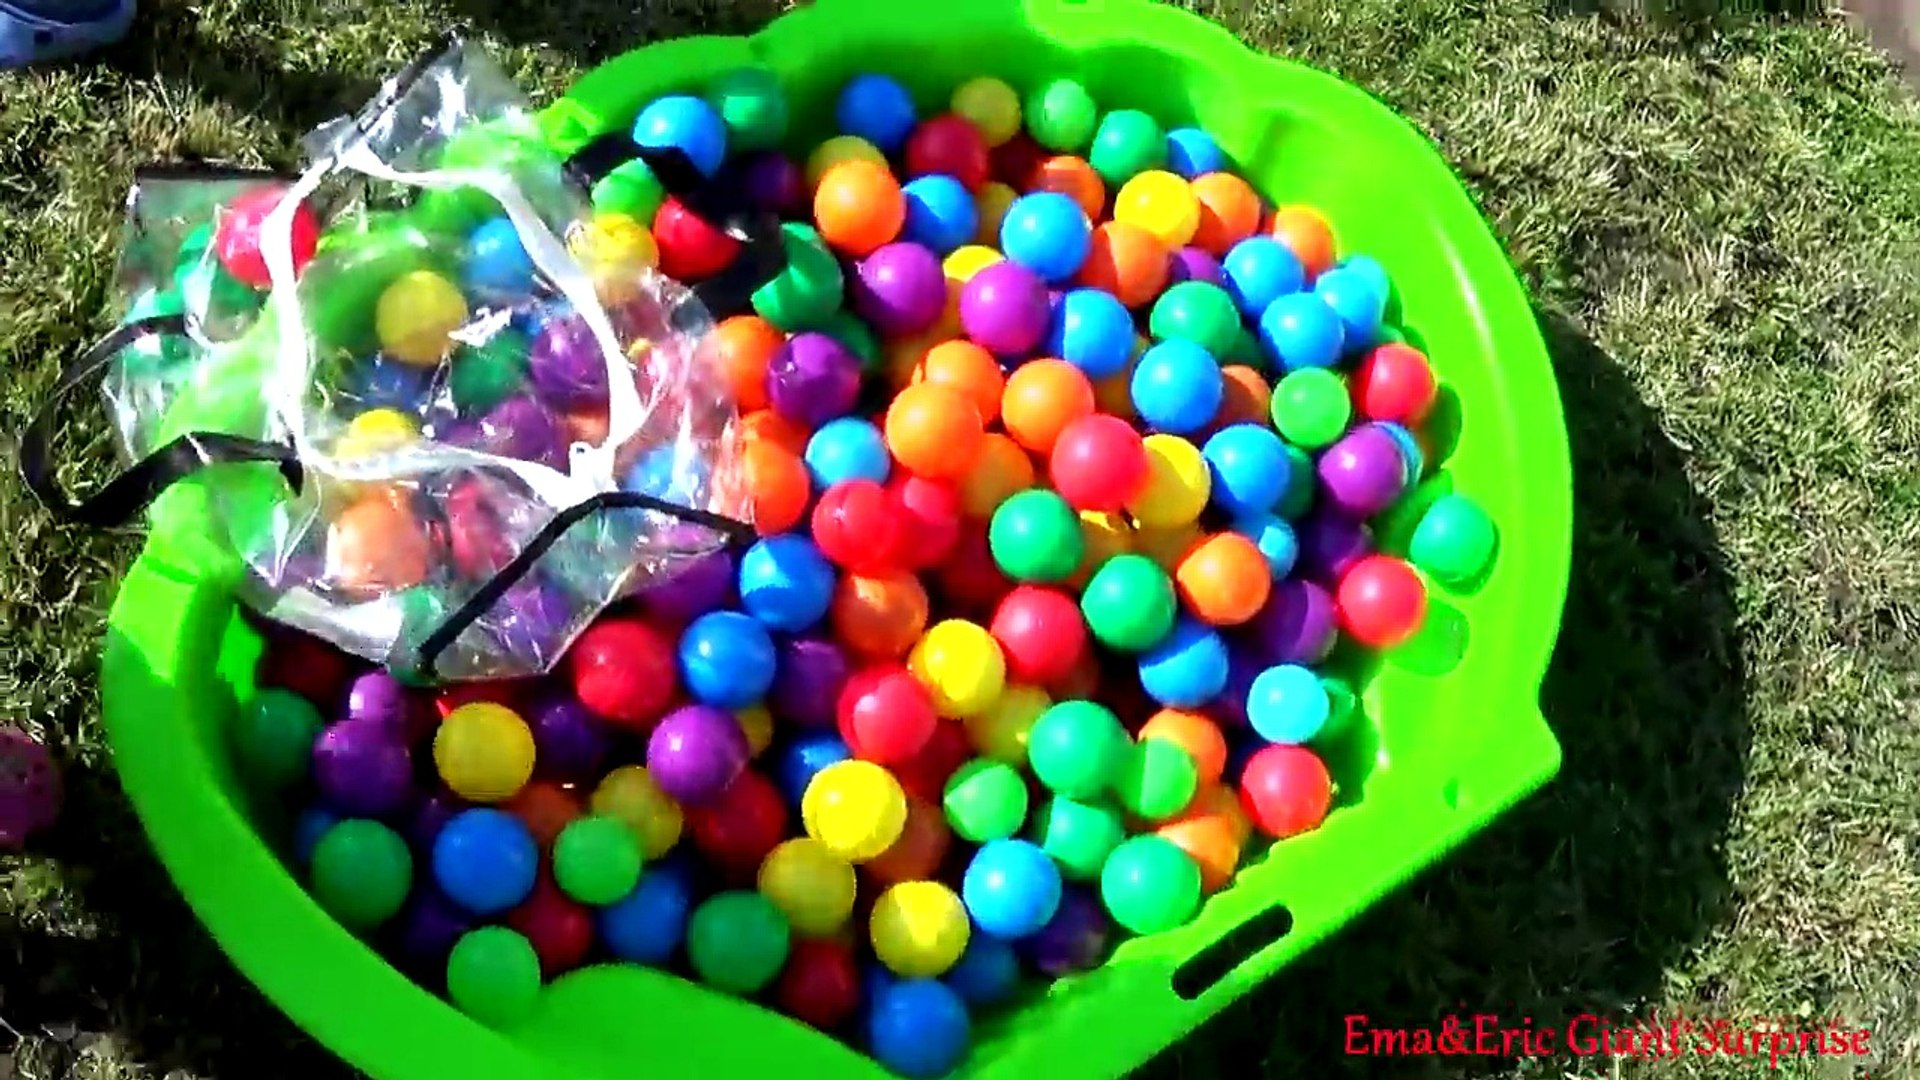 Learn Colors for Kids Children Toddlers - Playground Ball Pit Show for Kids - Learning Video Part 1